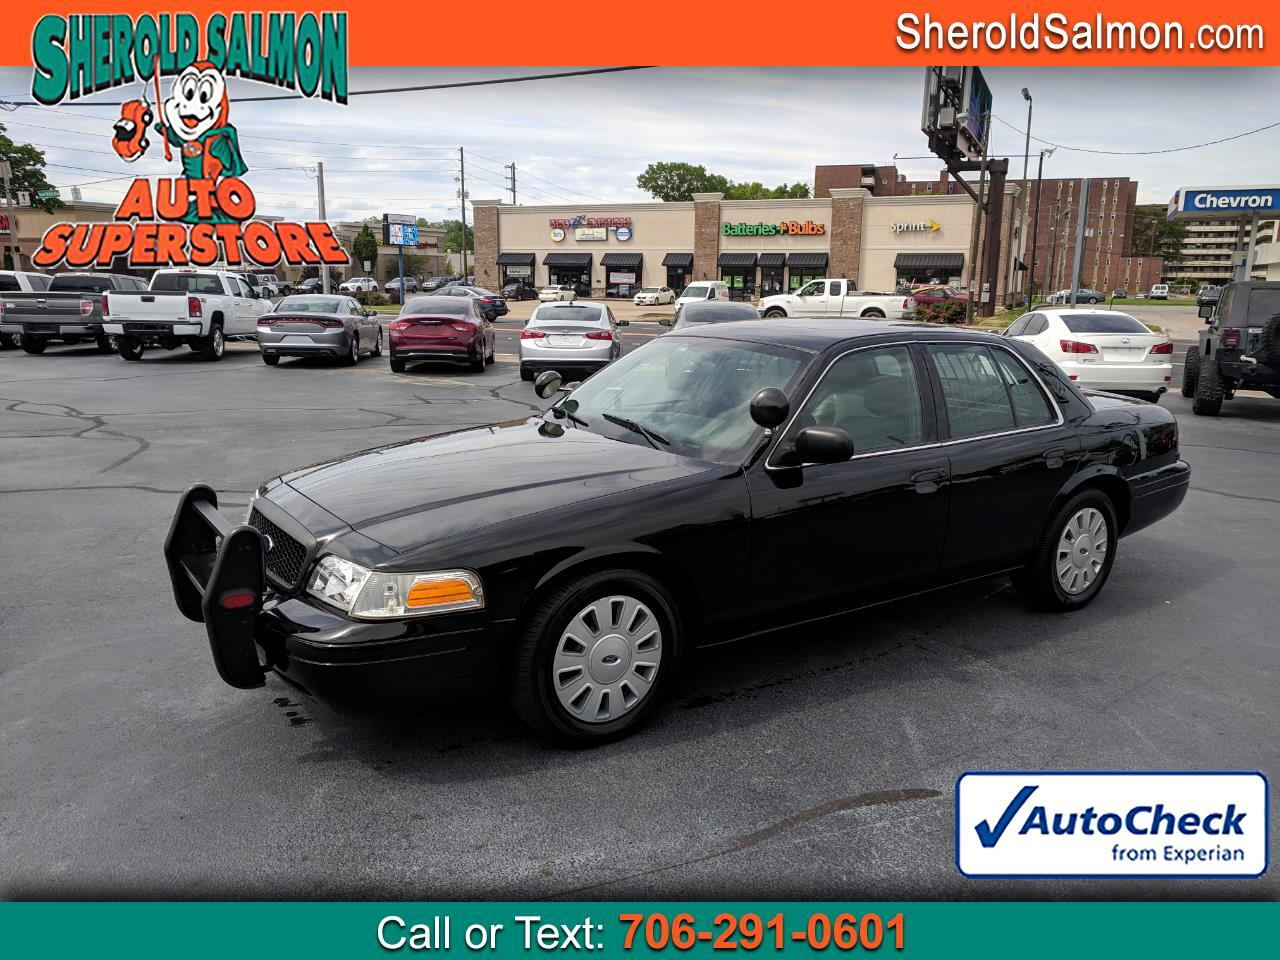 2010 Ford Police Interceptor 4dr Sdn w/3.27 Axle